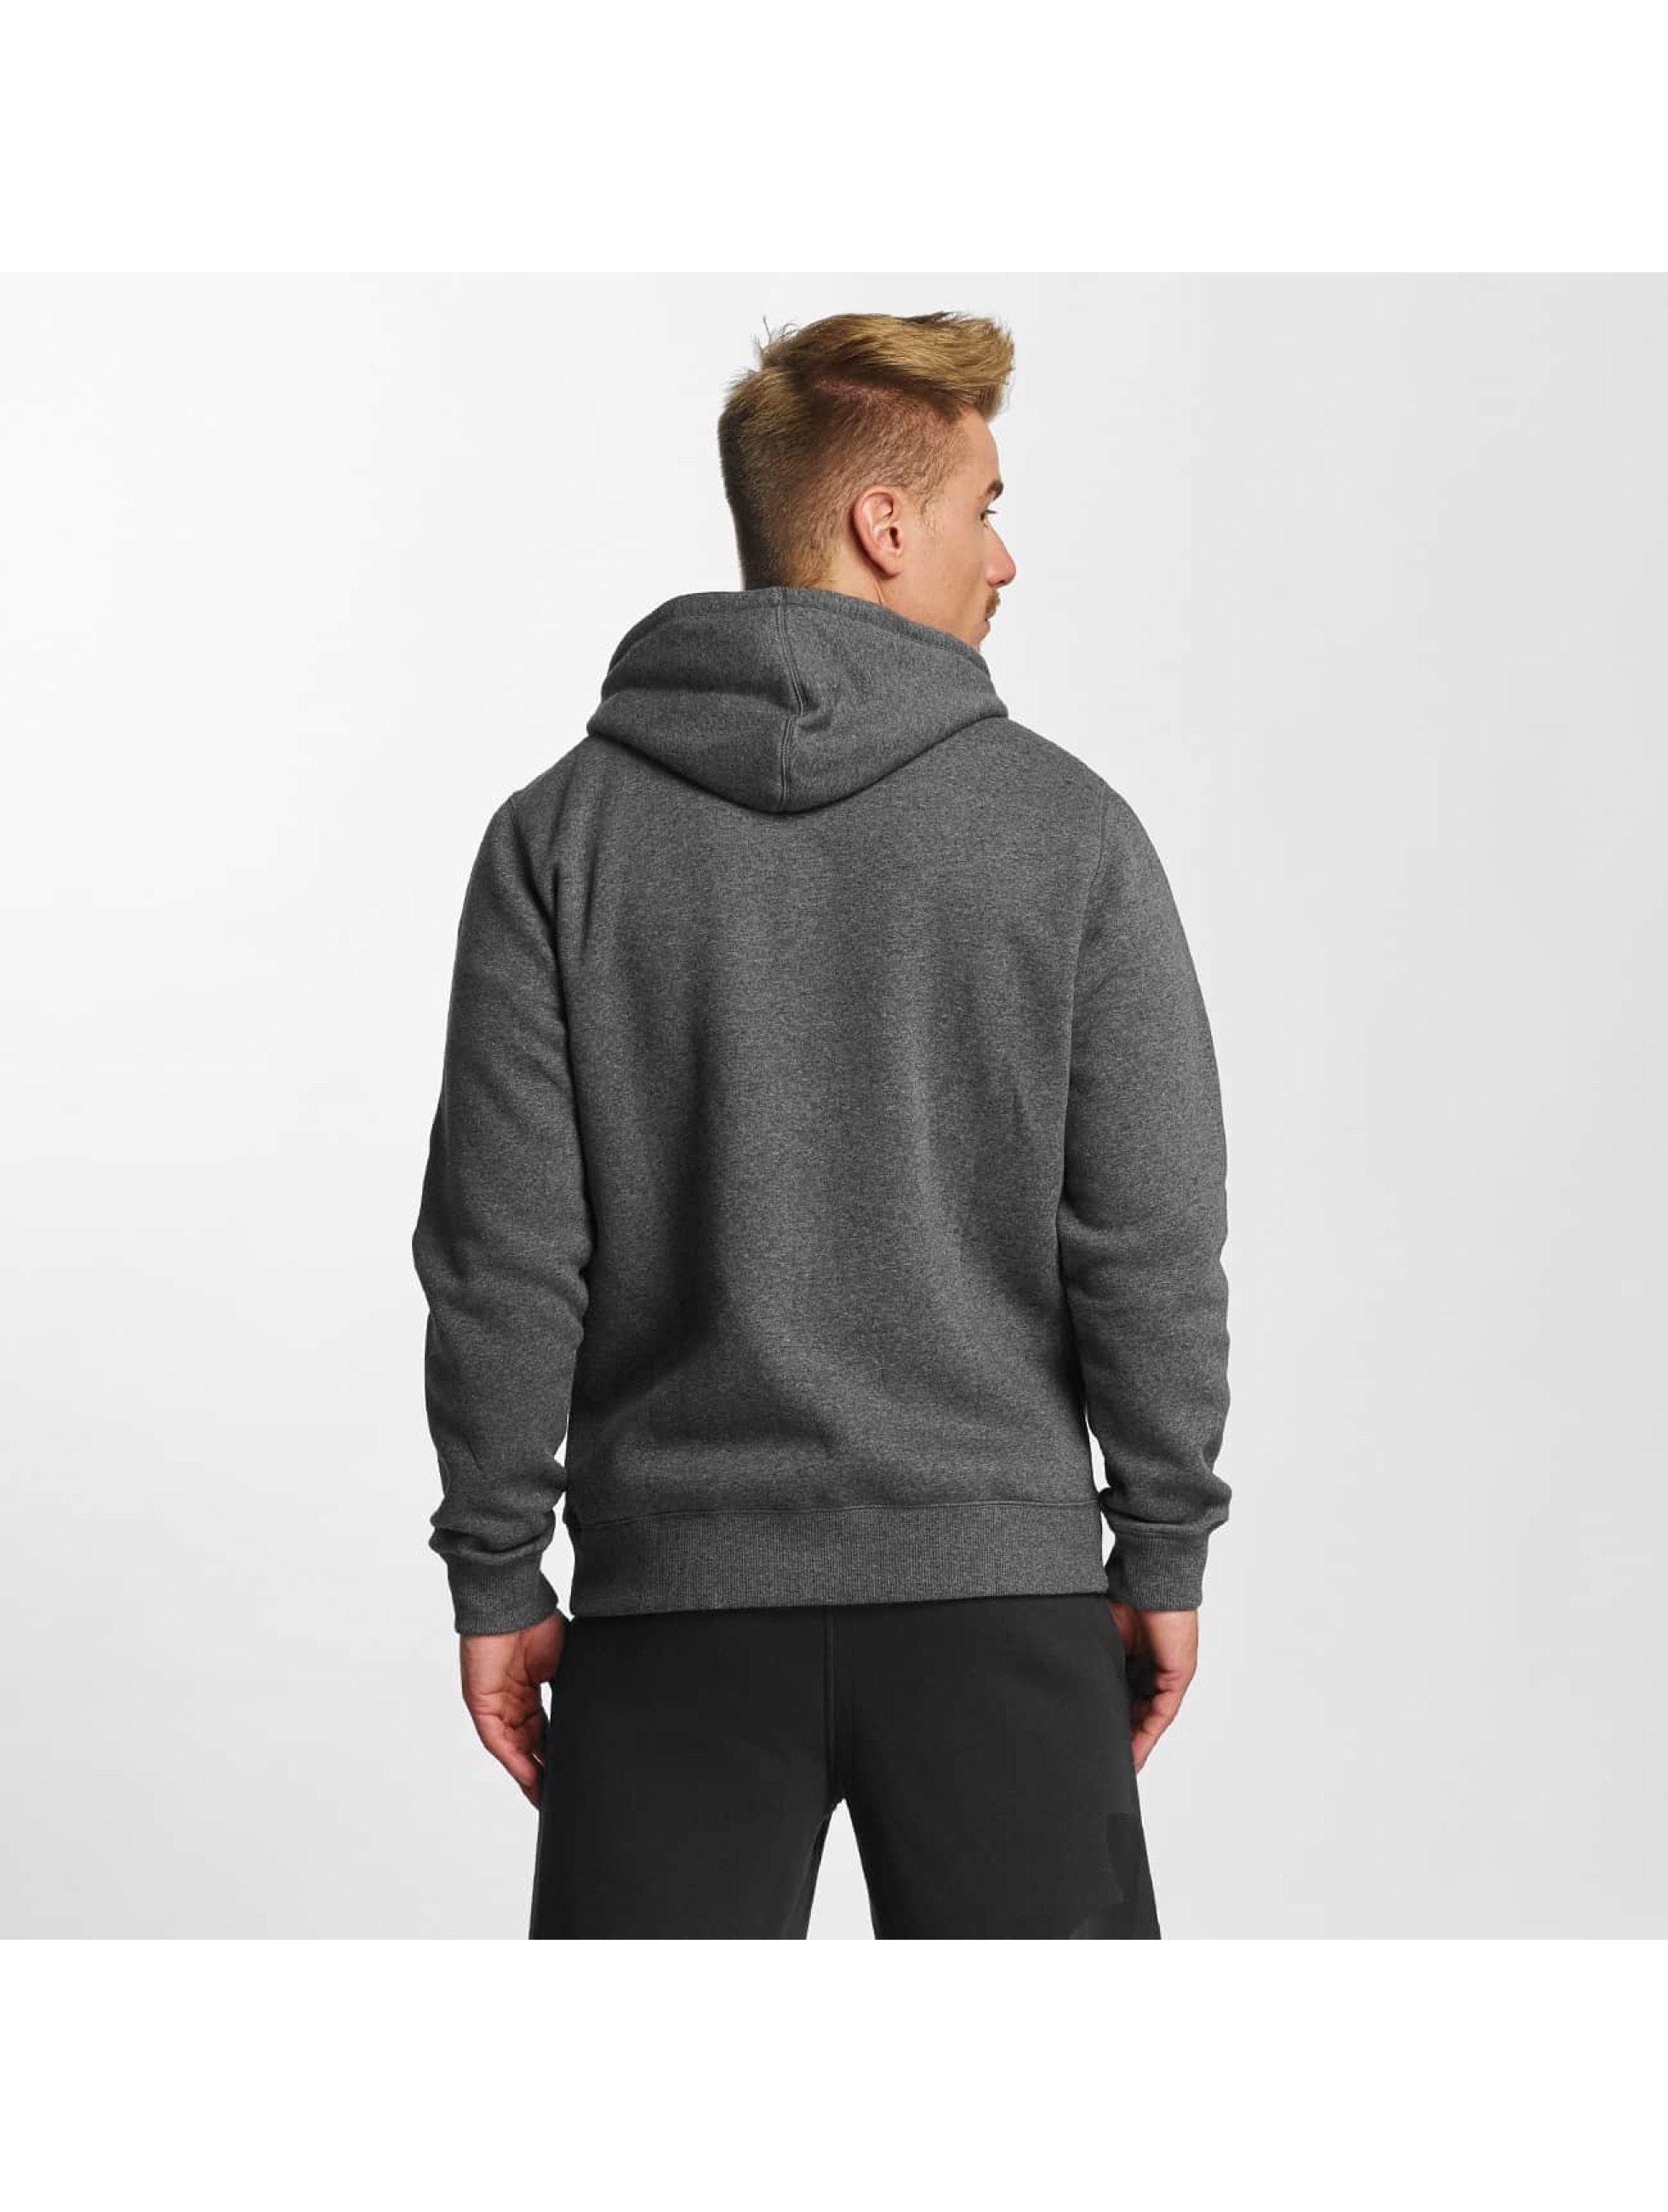 Under Armour Zip Hoodie Rival grau